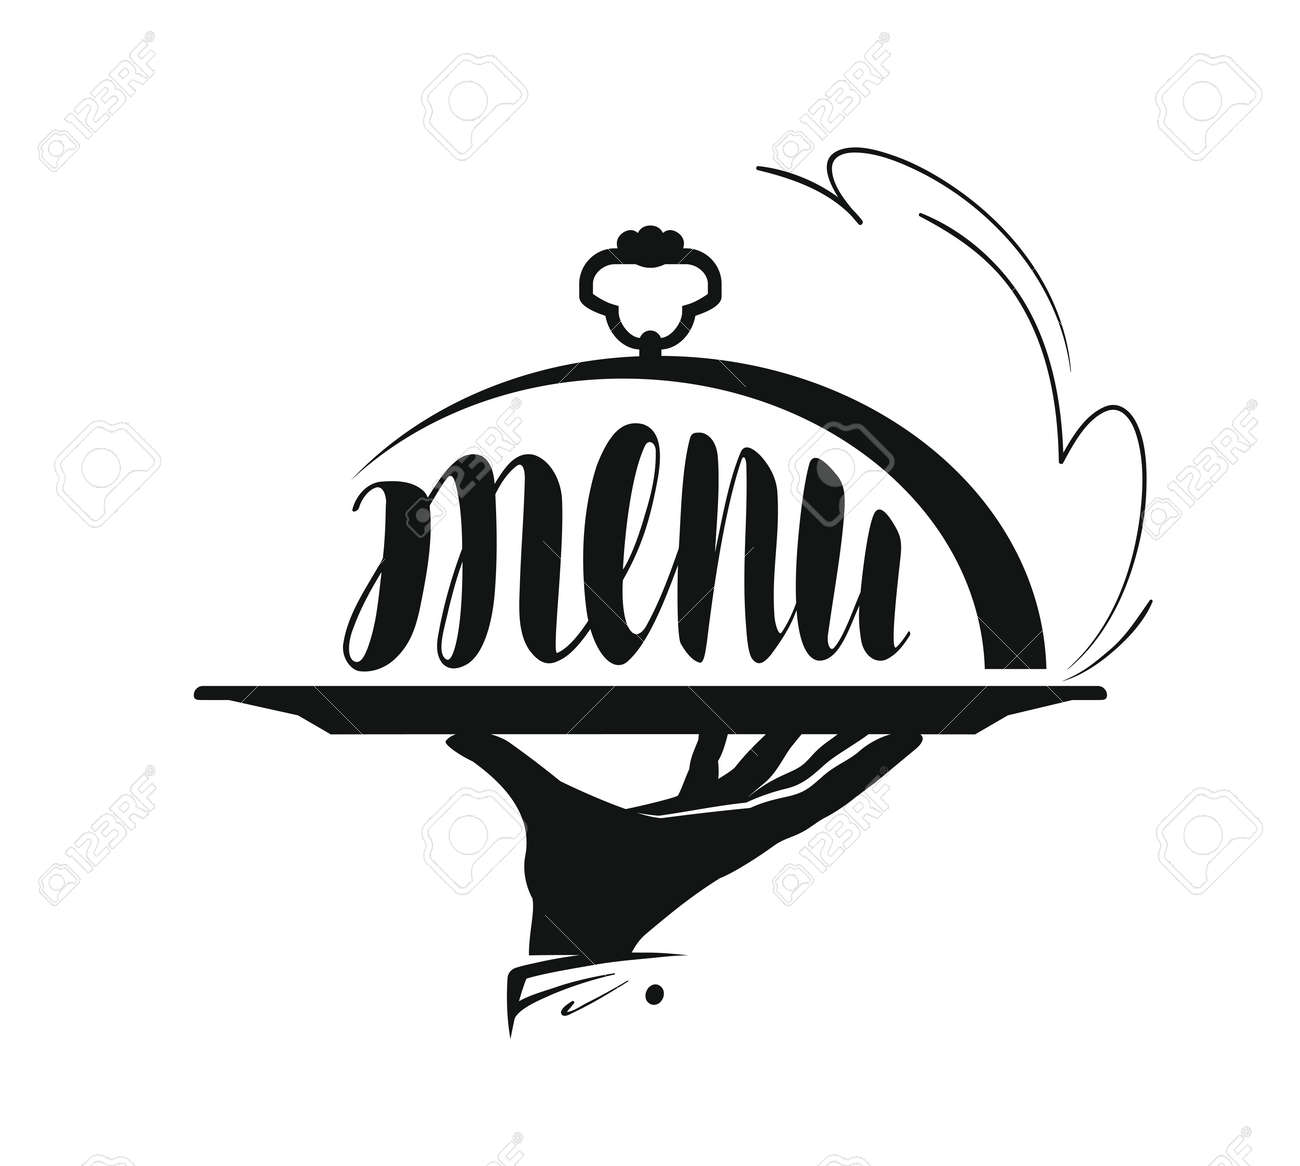 food service, catering logo. icon for design menu restaurant